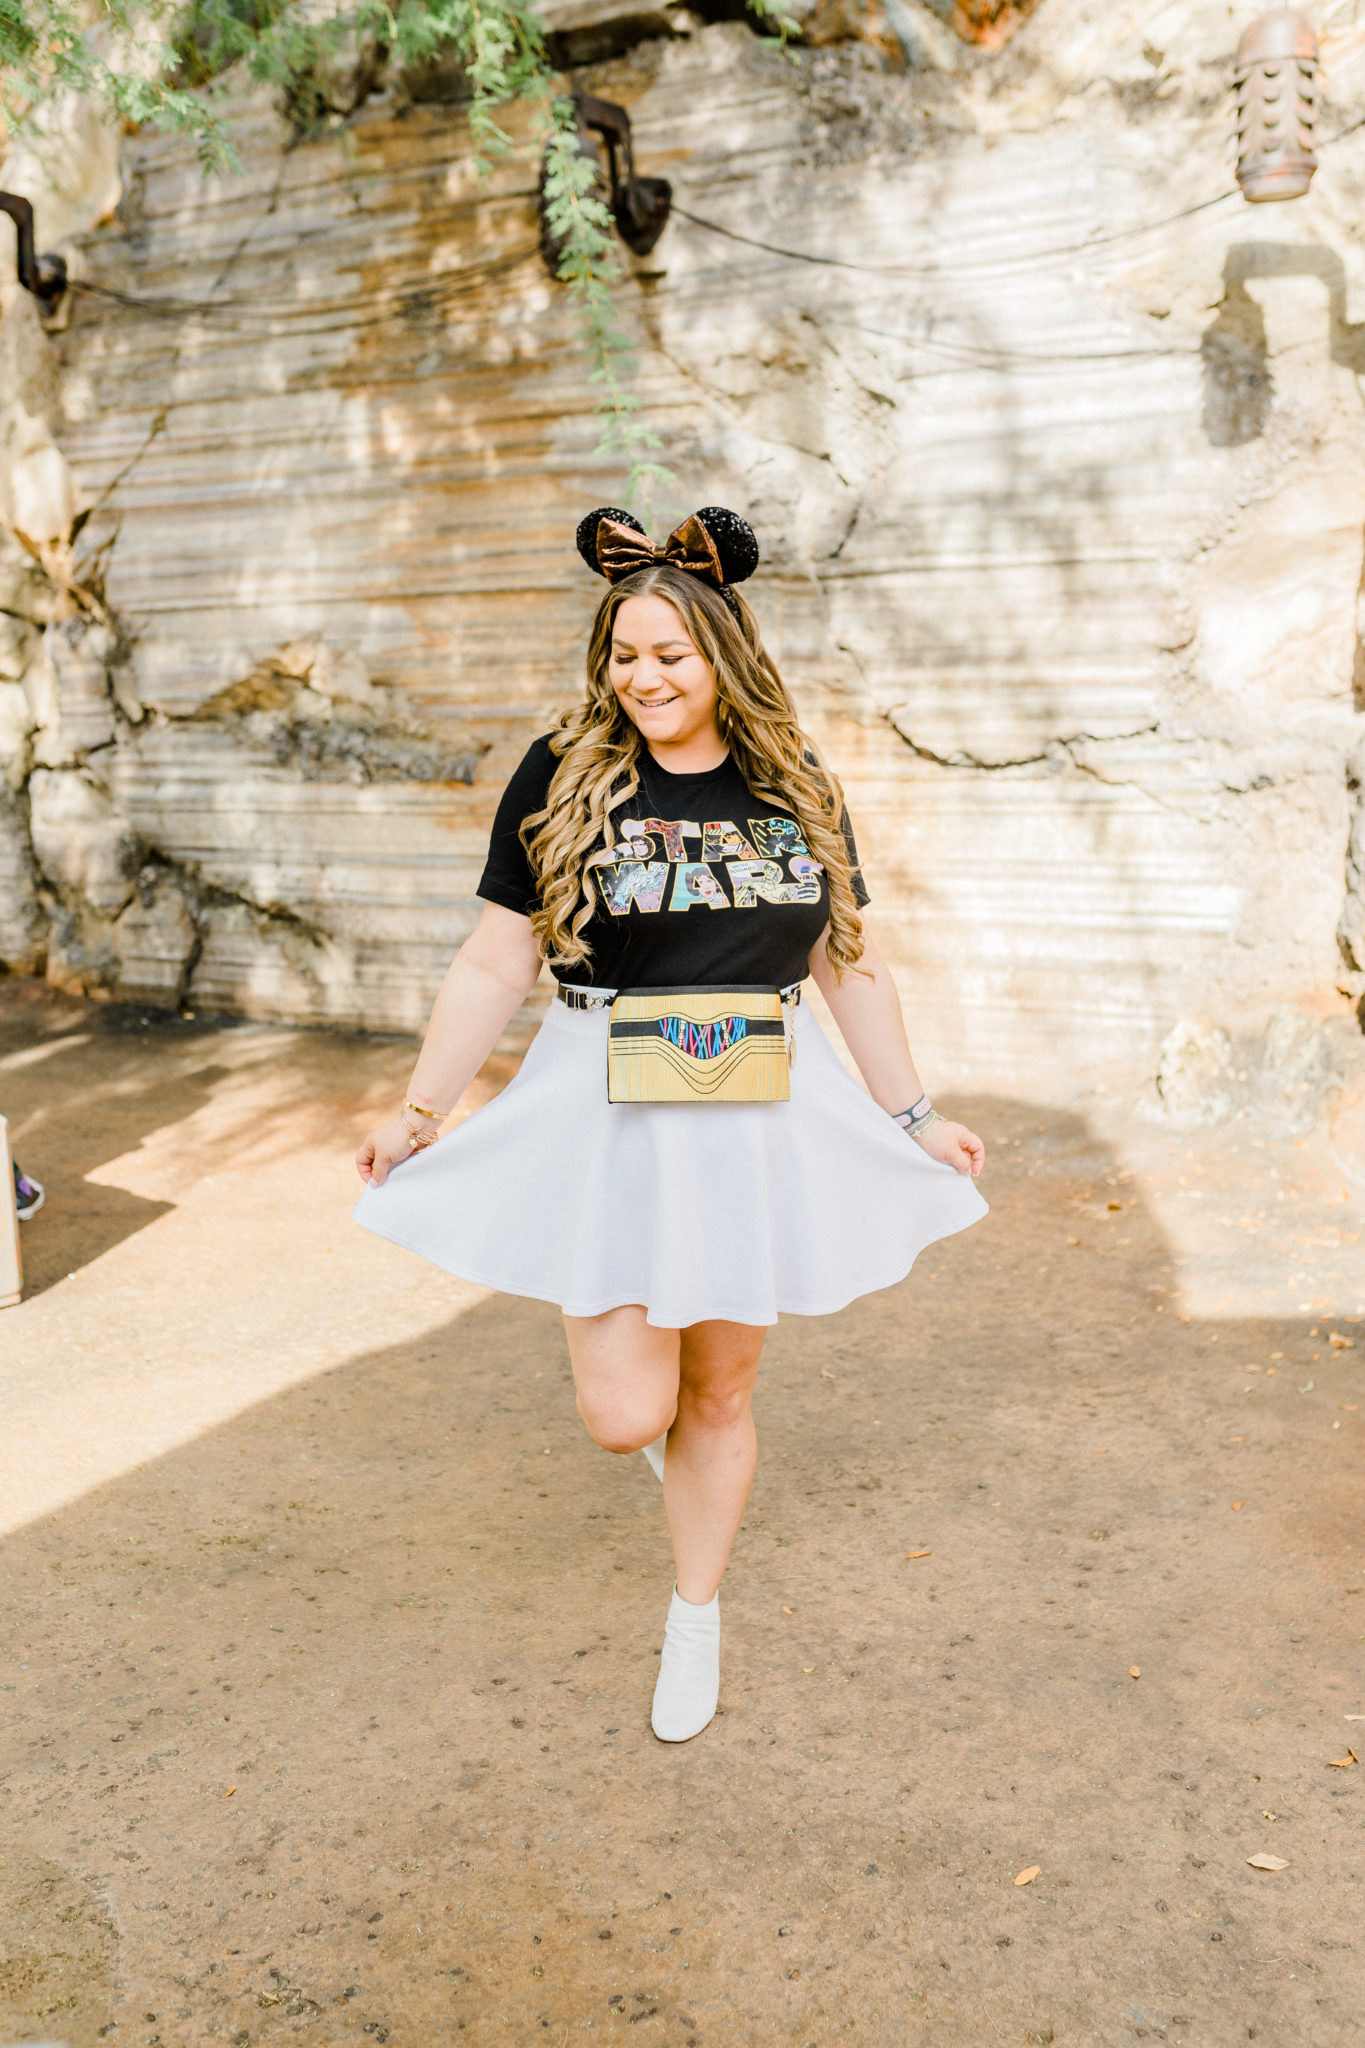 missyonmadison, missyonmadison blog, la blogger, star wars, star wars day, star wars fans, star wars outfits, galaxys edge, star wars collectibles, star wars movies, star wars nerd, star wars junkie, may 4th, may the 4th be with you,